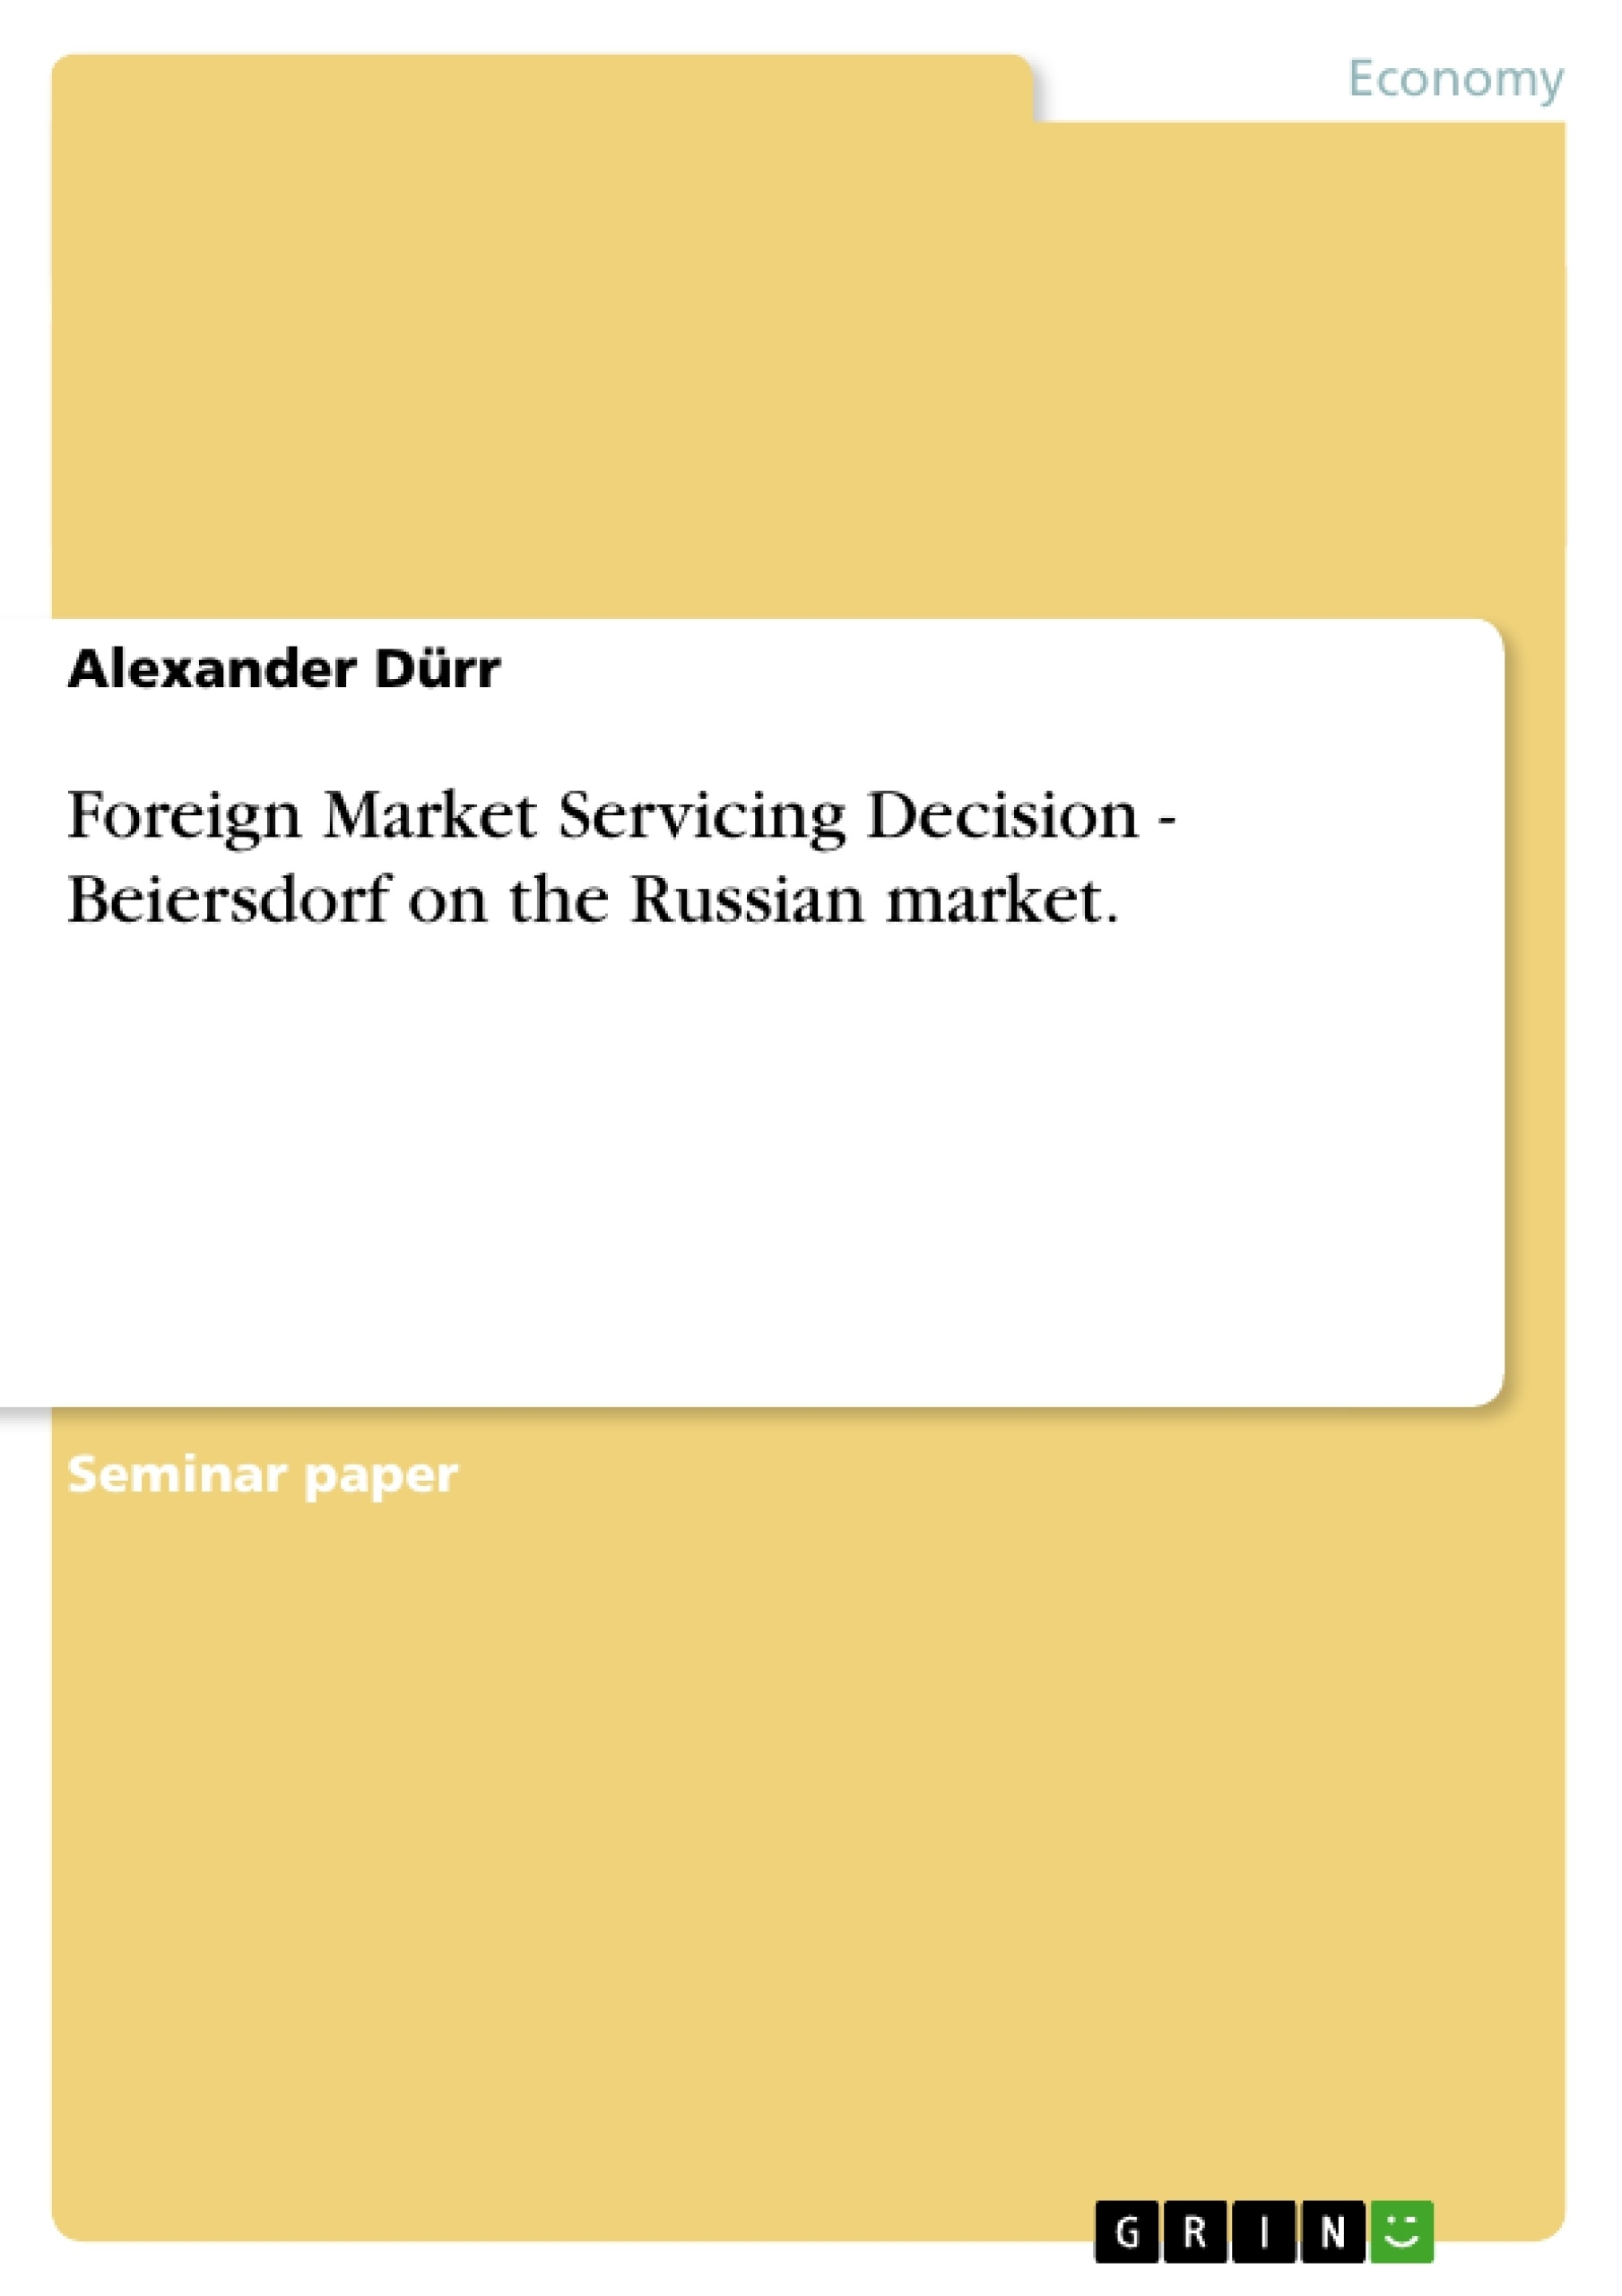 Title: Foreign Market Servicing Decision - Beiersdorf on the Russian market.